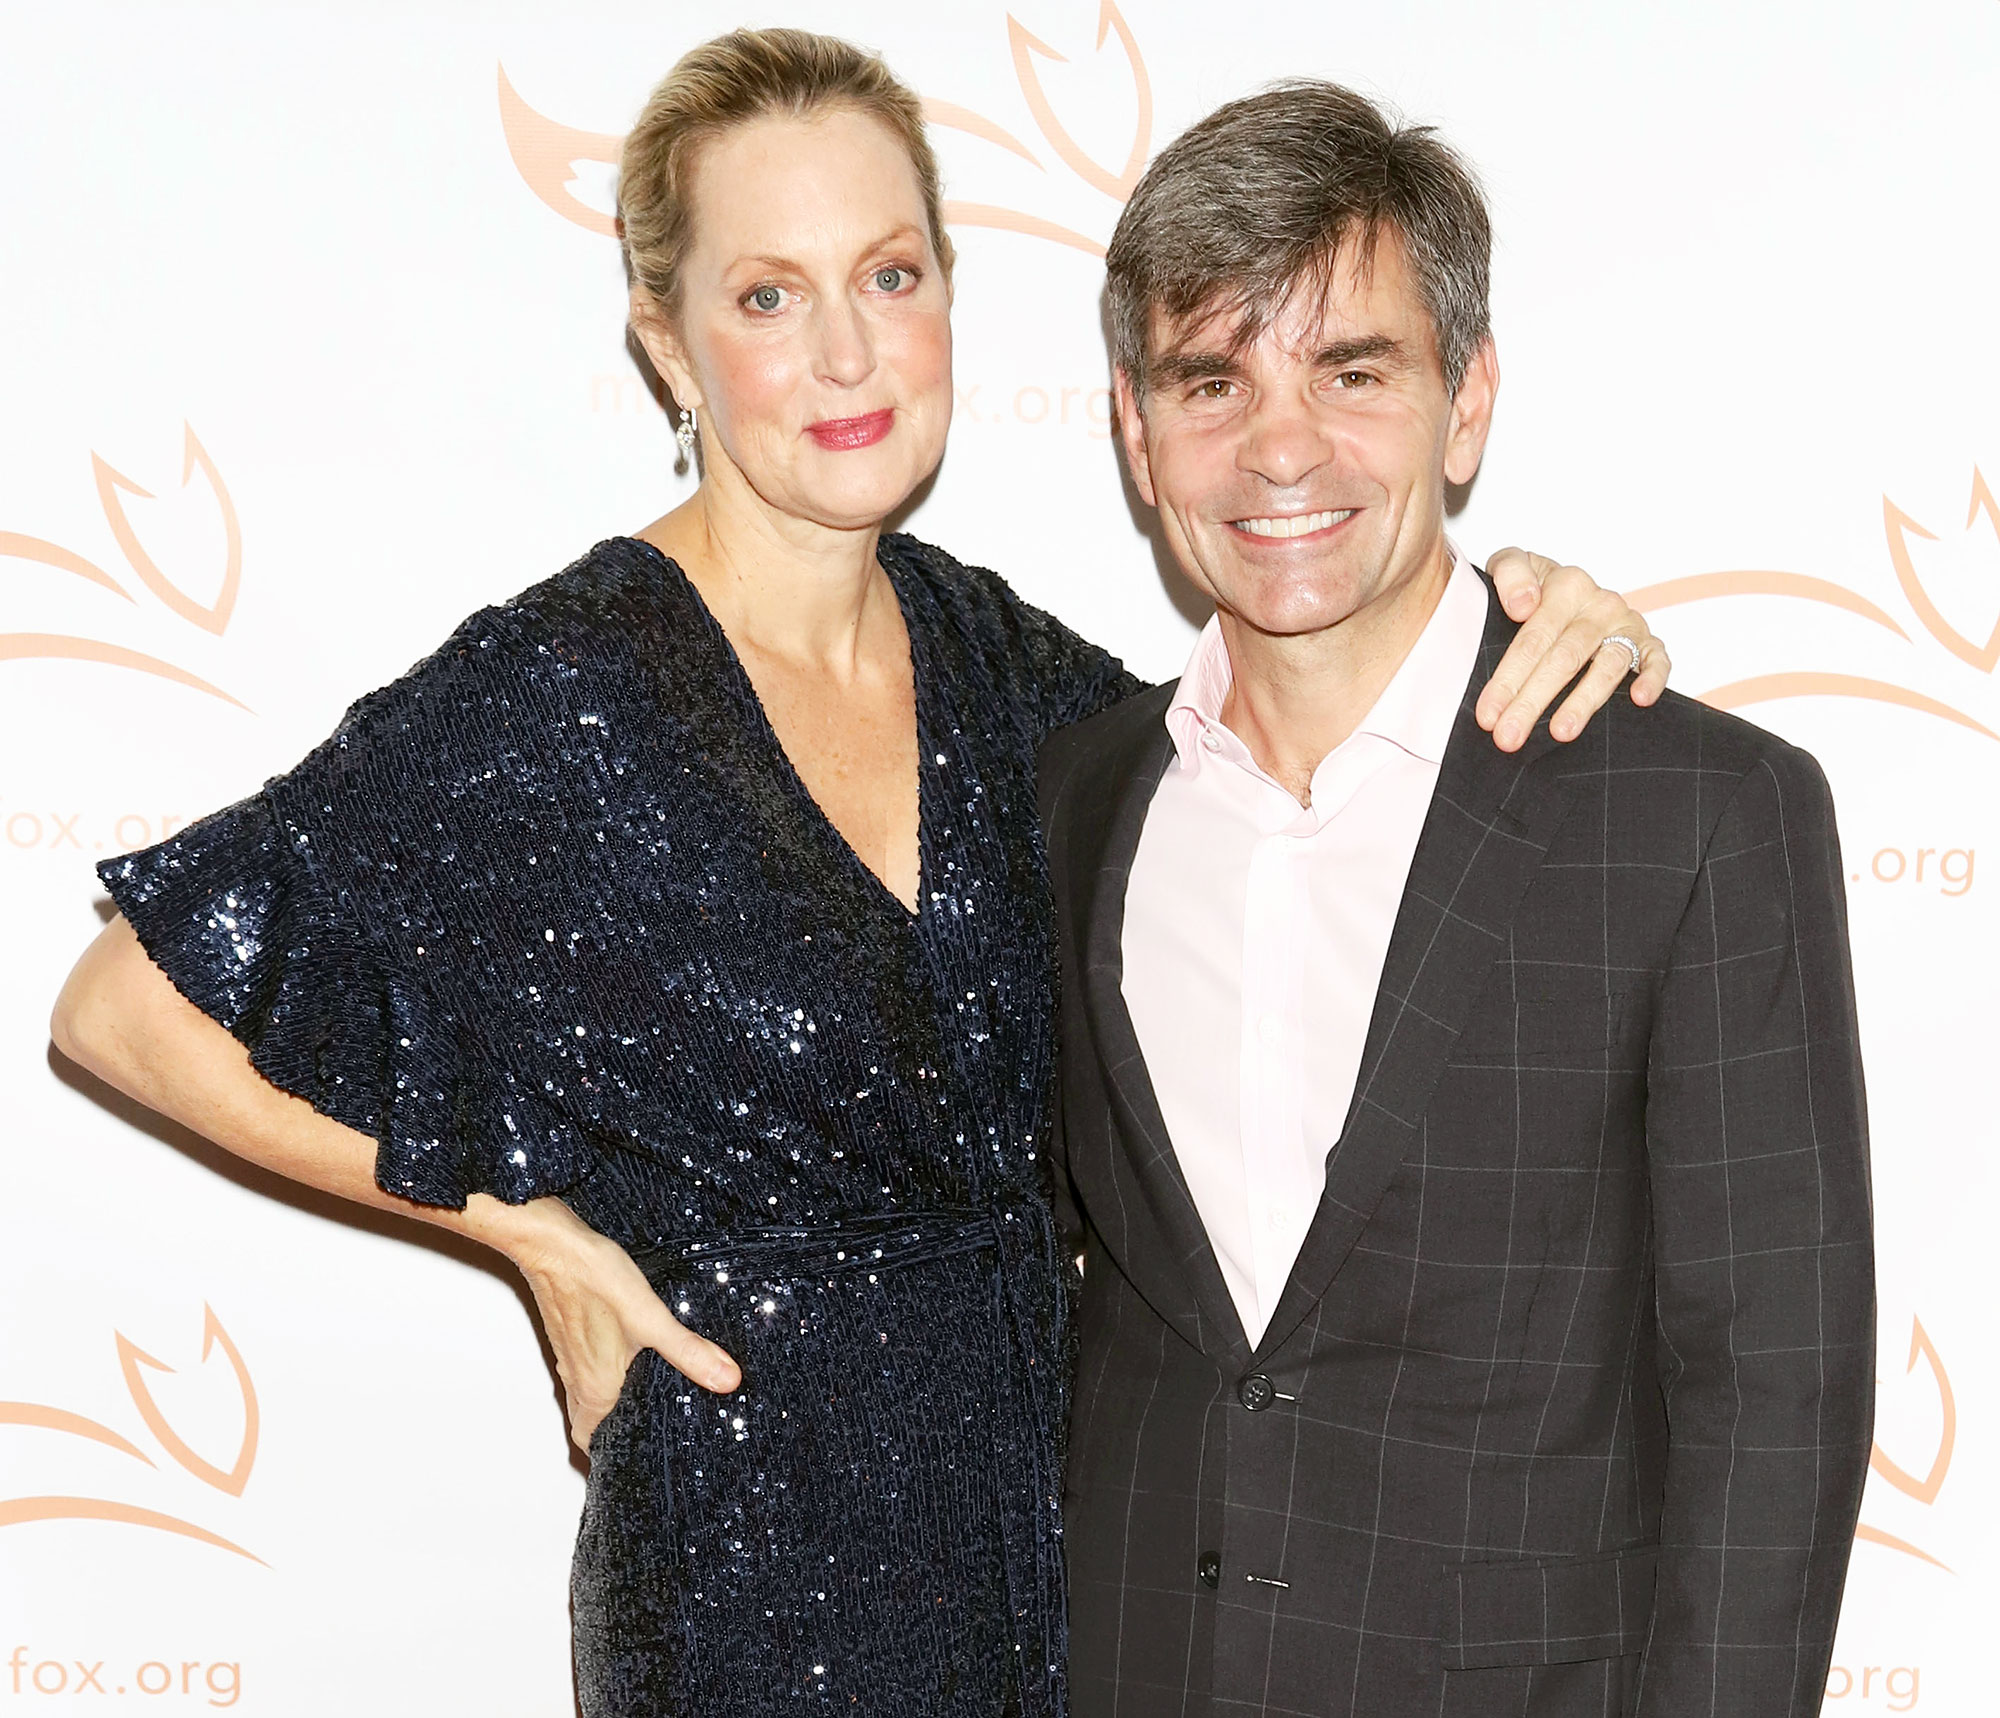 Ali Wentworth and George Stephanopoulos Ali Wentworth Actually Believed She Was Married to Jon Hamm After Binge-Watching Mad Men in Coronavirus Delirium